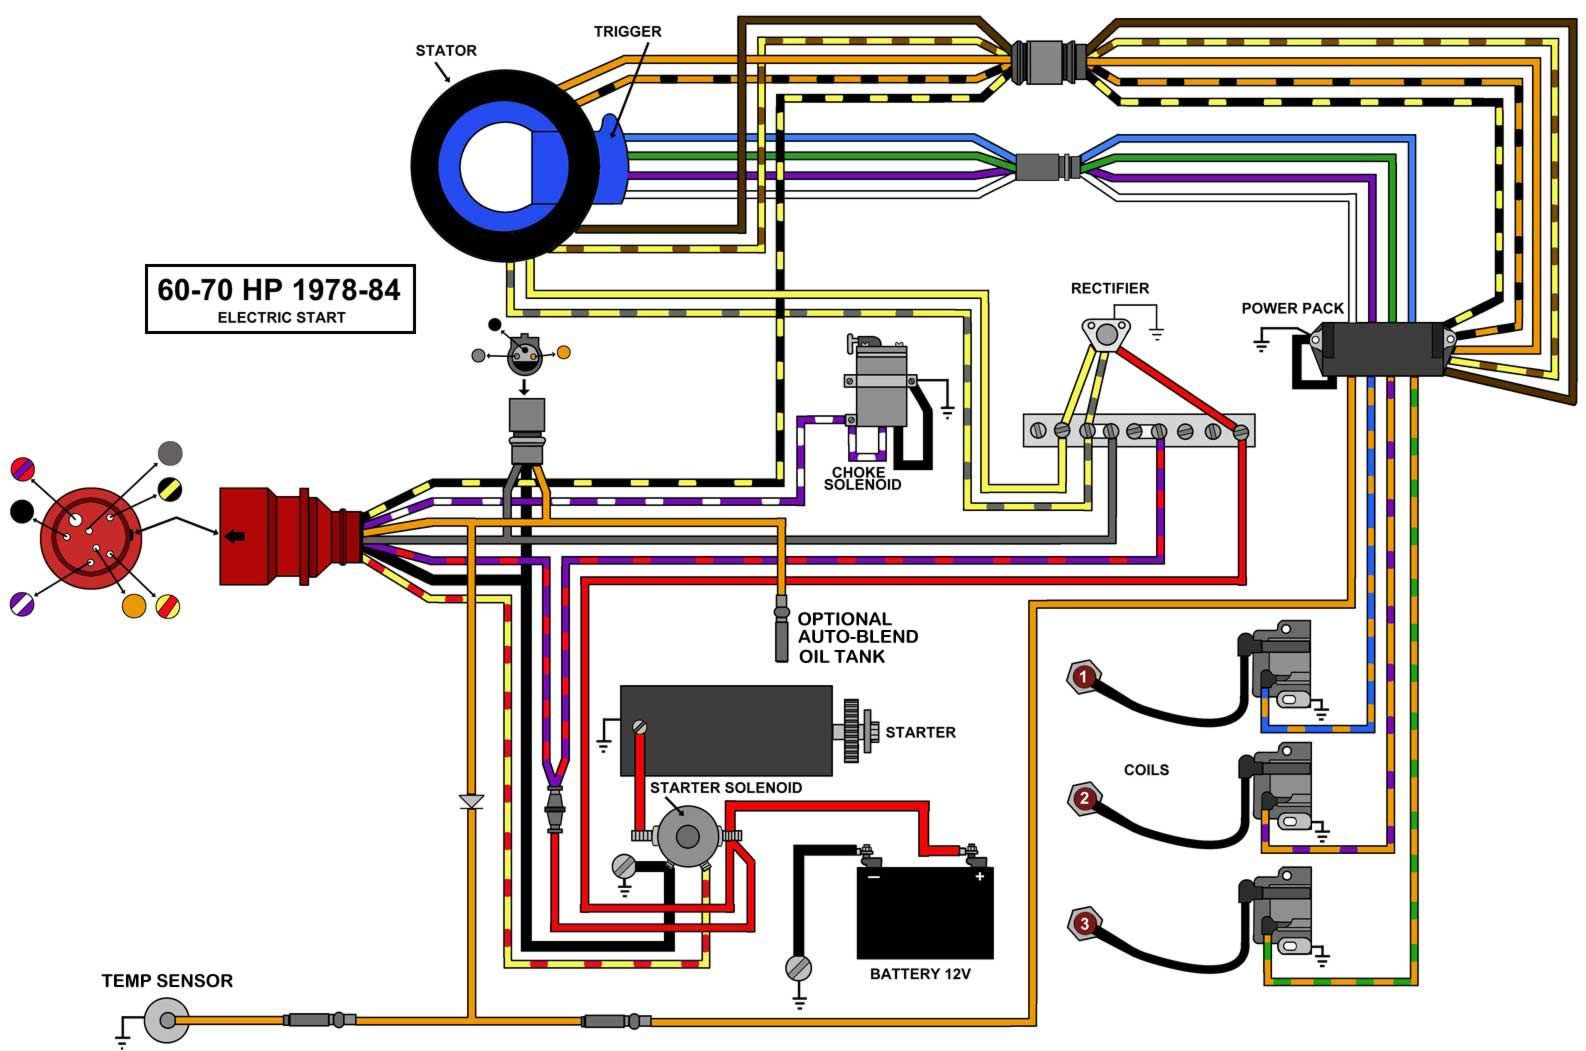 small resolution of image result for 70 hp johnson 1988 wiring to tachometer etc diagram johnson controls lube oil control wiring diagram johnson control wiring diagram